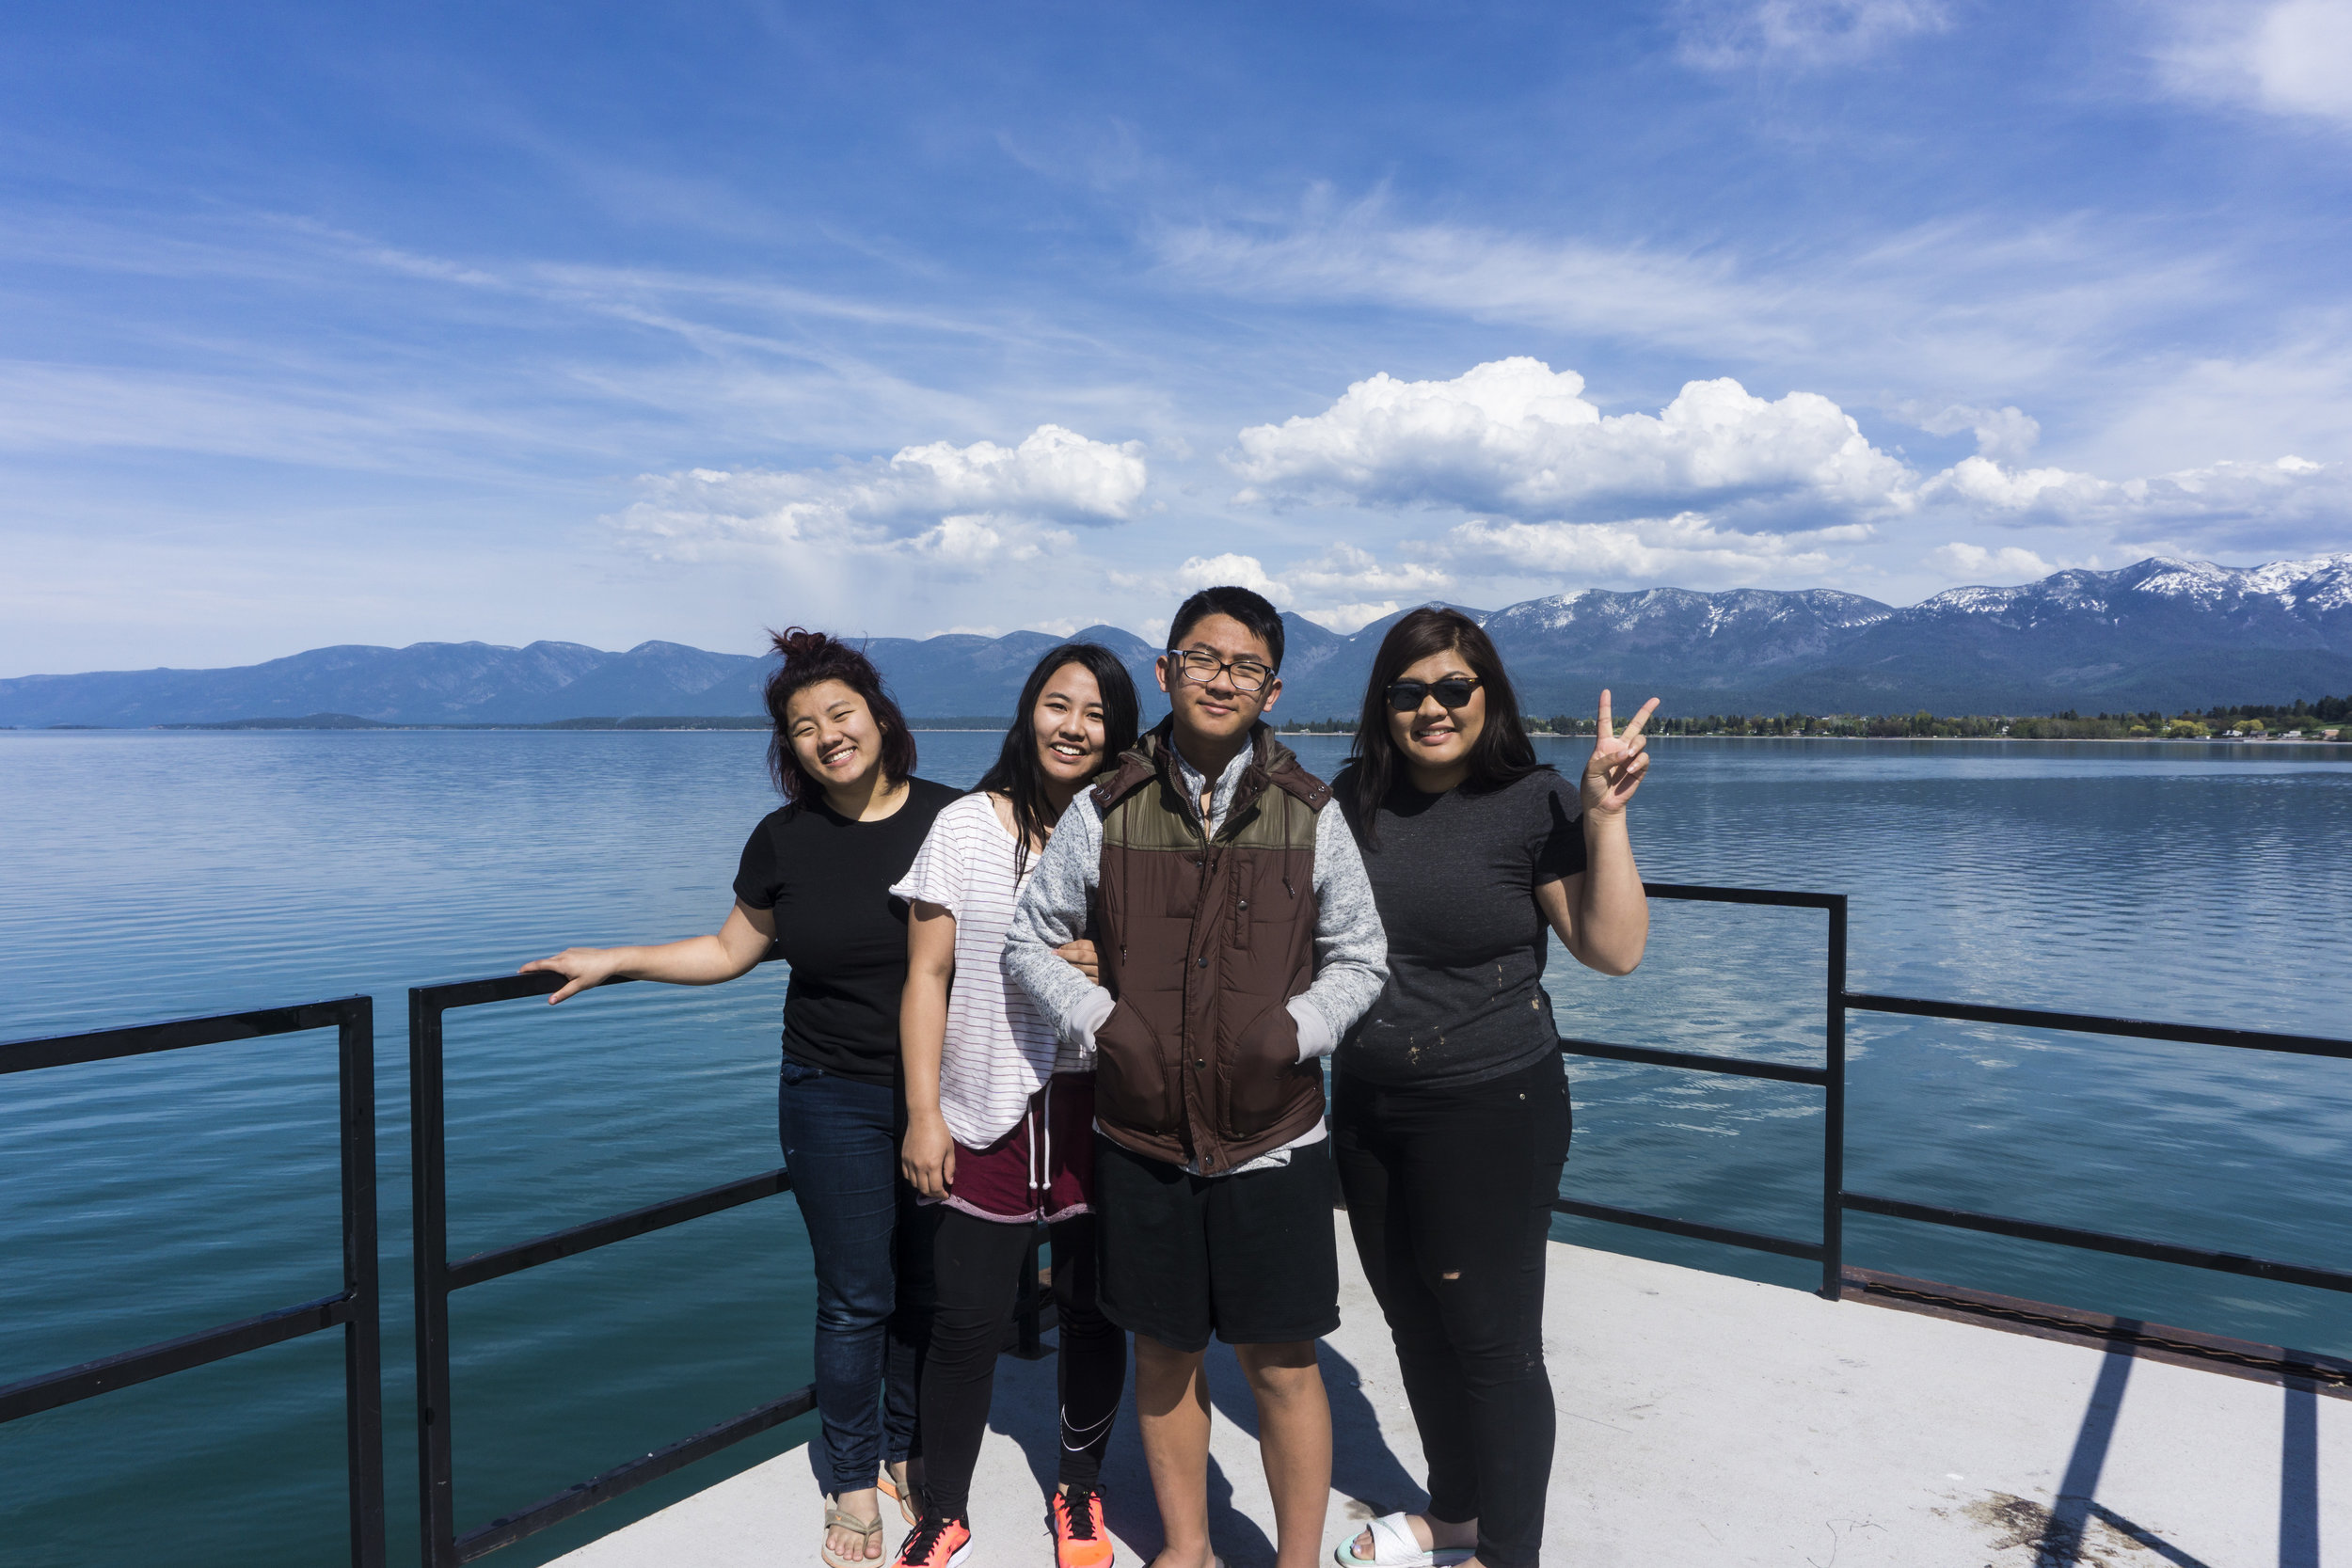 An Unexpected 4 Day Road trip to Montana. The Vang Family. Livia Vang. Polson, Montana. Flathead Lake, Lake Mcdonald, Glacier National Park. yellowStone National Park, Traveling Sisters and Brothers. Siblings.